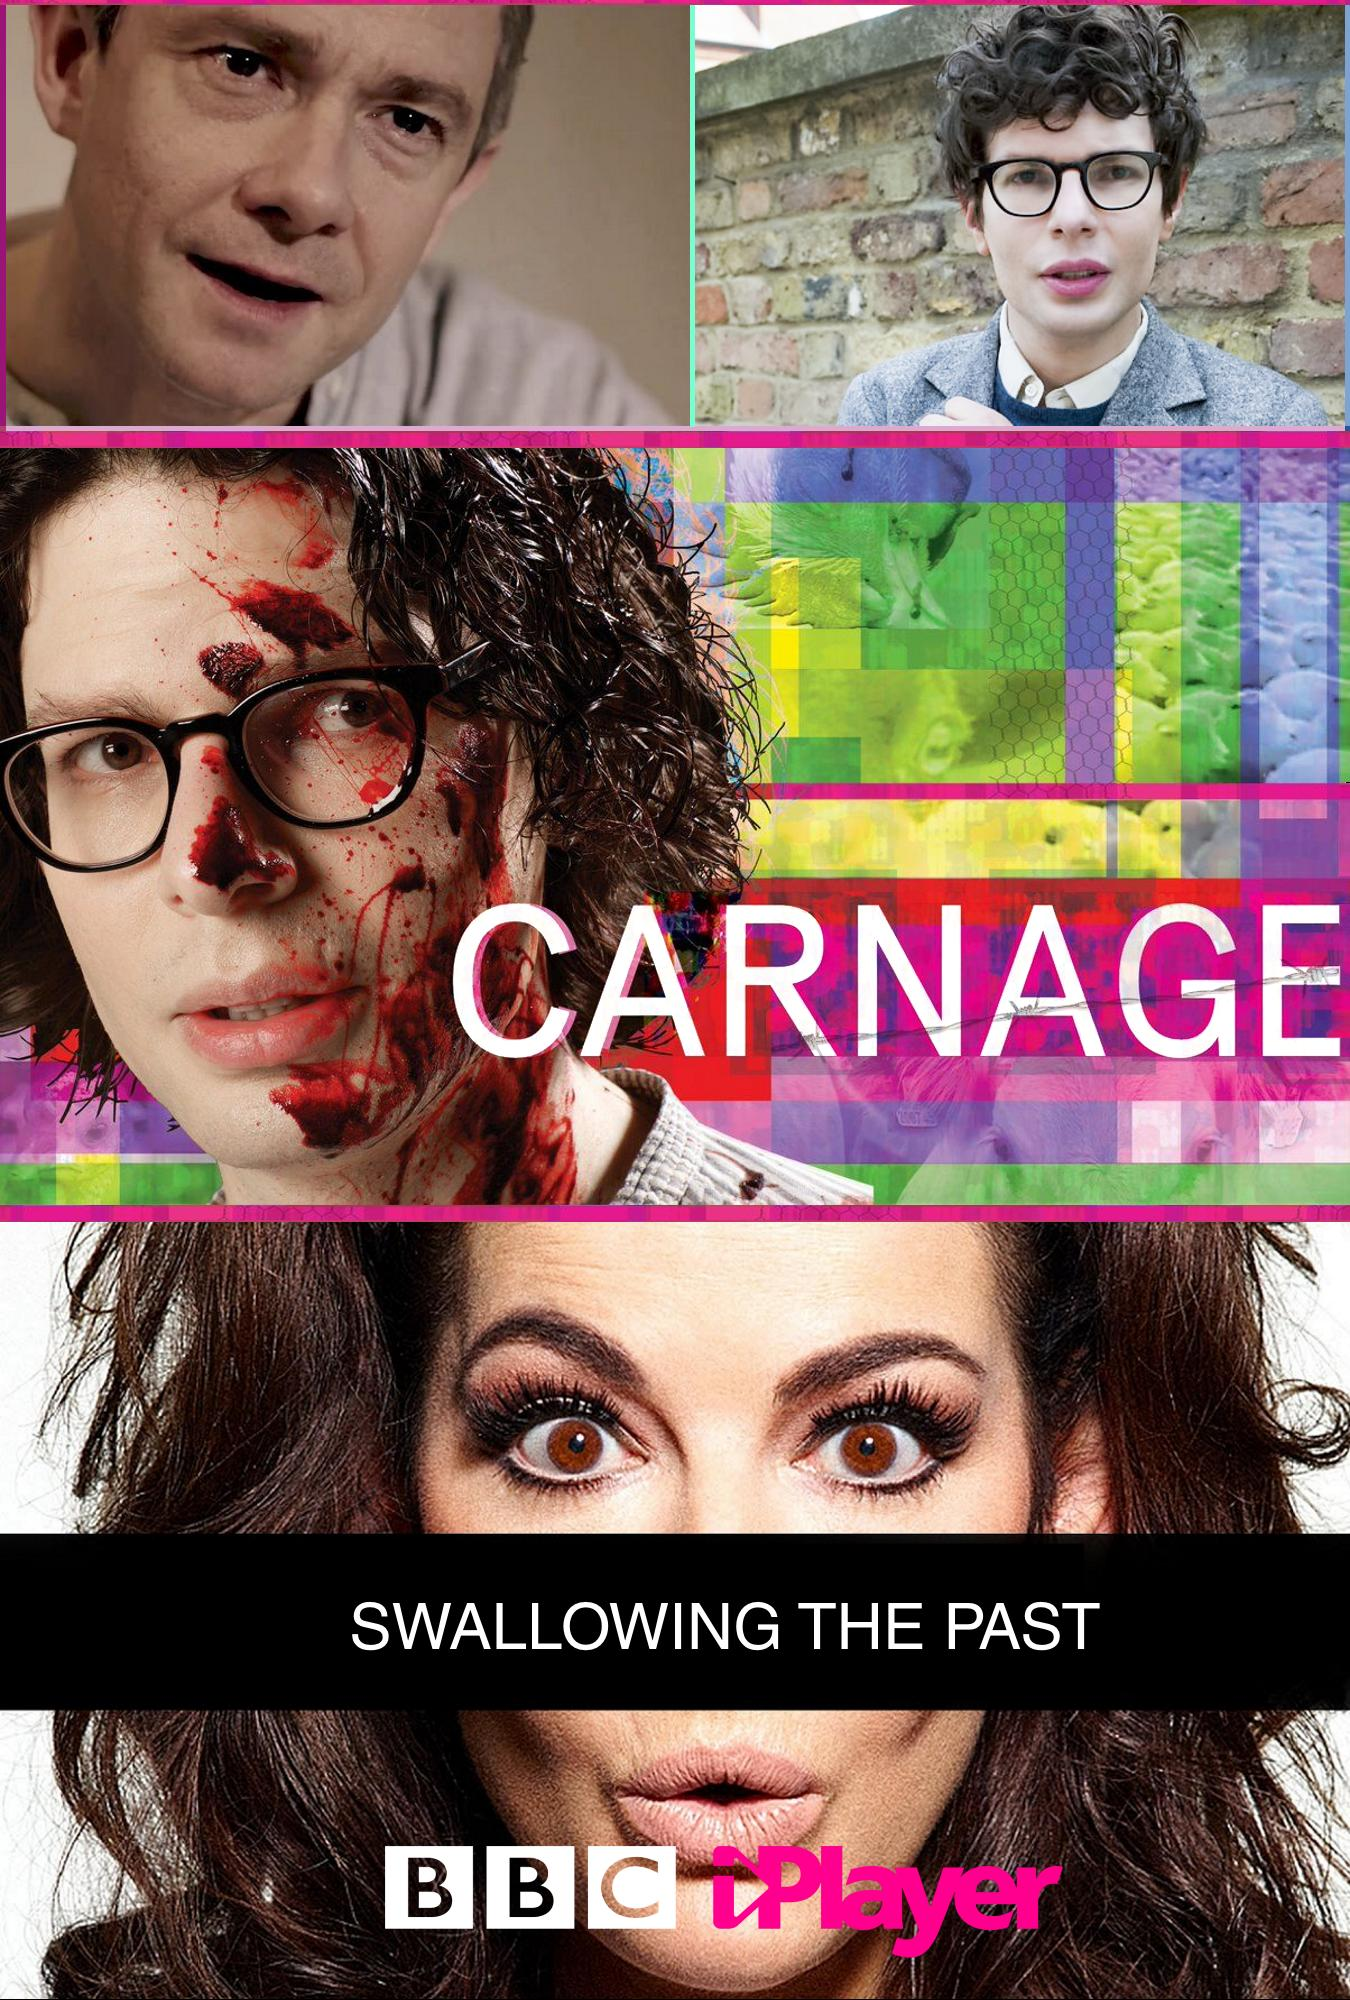 Carnage Swallowing The Past 2017 Imdb